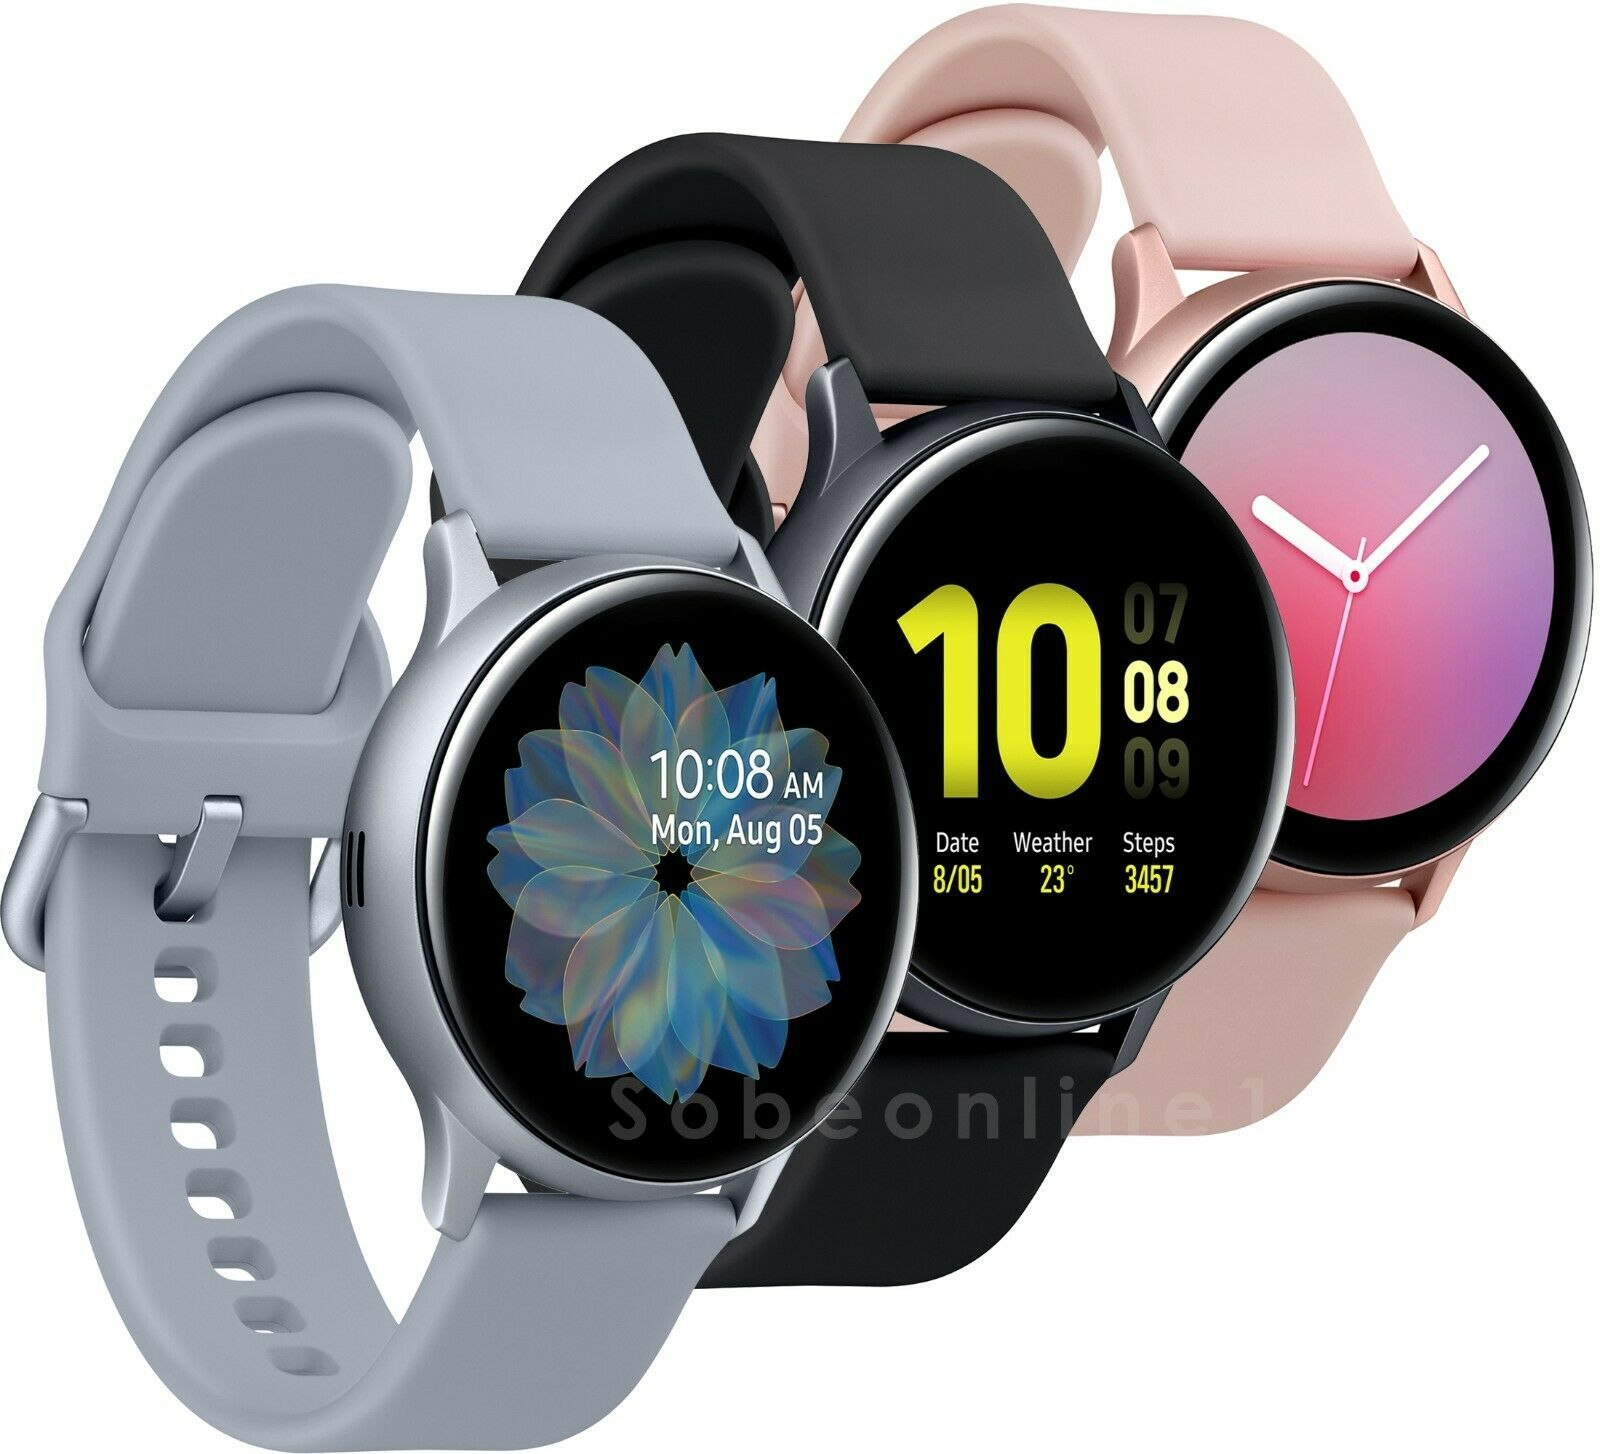 images?q=tbn:ANd9GcQh_l3eQ5xwiPy07kGEXjmjgmBKBRB7H2mRxCGhv1tFWg5c_mWT Smart Watch Active Vs Active 2